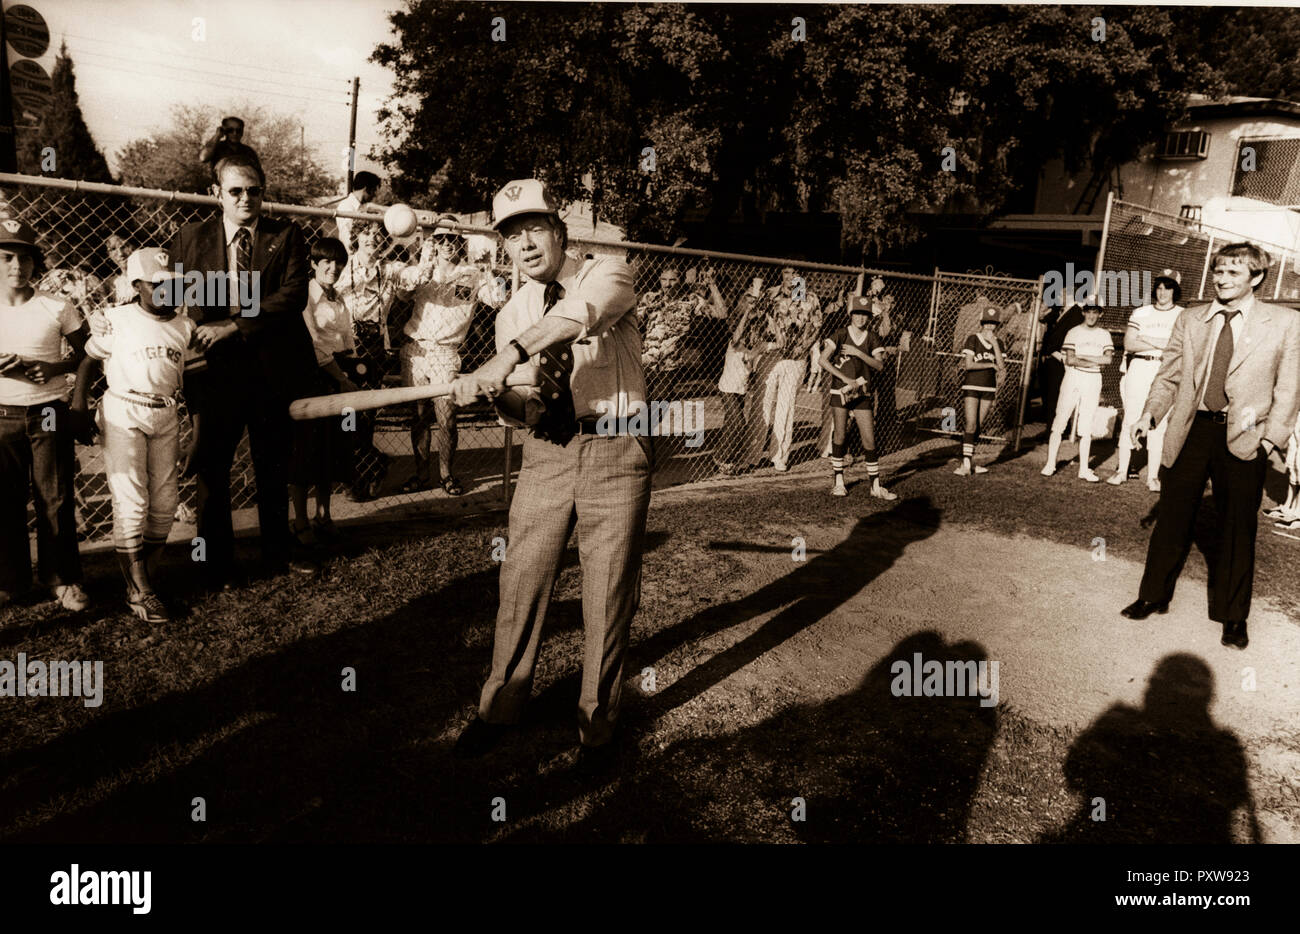 1976 Democratic presidential nominee Jimmy Carter stops his motorcade enroute to a rally in order to visit with elementary school children. Several of the children invited Carter to join them on the baseball field. Carter press secretary, Jody Powell is on far right and a US Secret Service agent holds a boy out of harms way as Carter takes a swing. - Stock Image